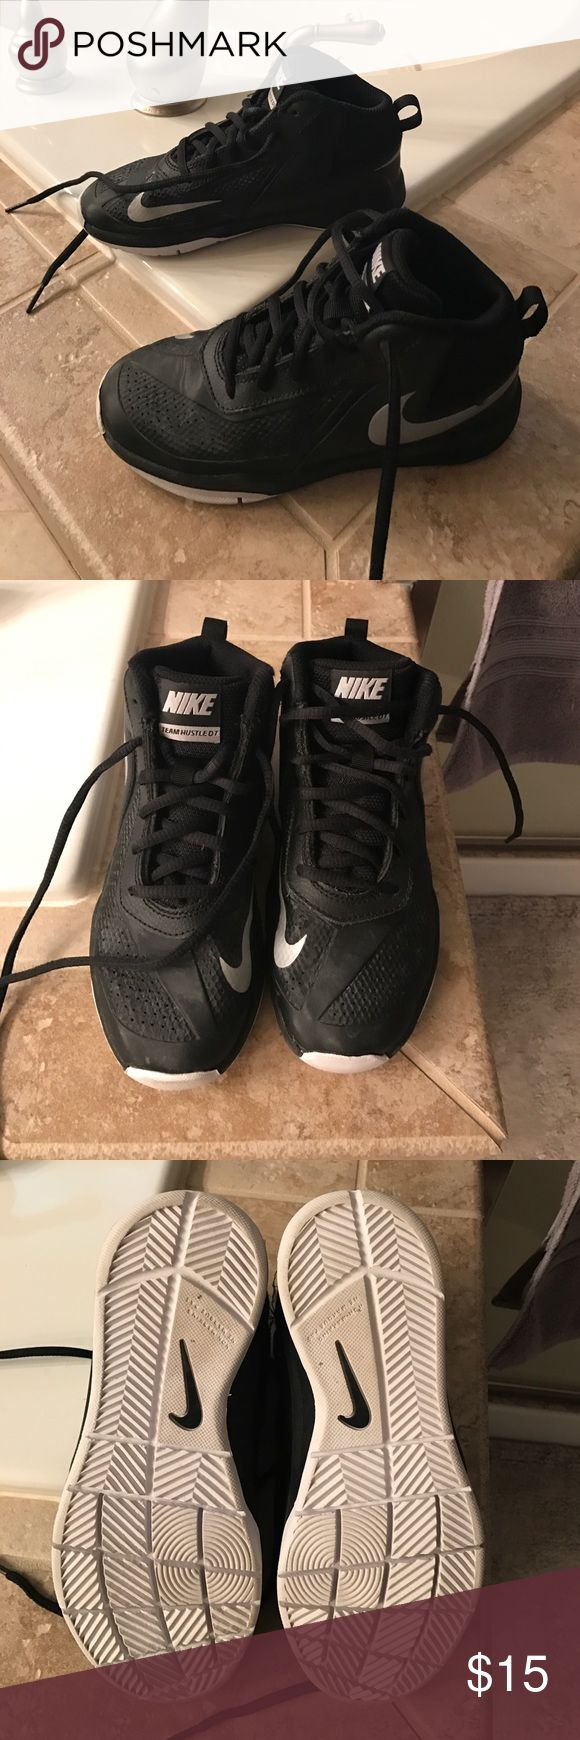 Boys Nike Basketball Shoes size 1y Boys Nike Basketball Shoes - size 1Y and in great condition.  Used for three months and never worn off the court or outside.  No damage or tears. Nike Shoes Sneakers